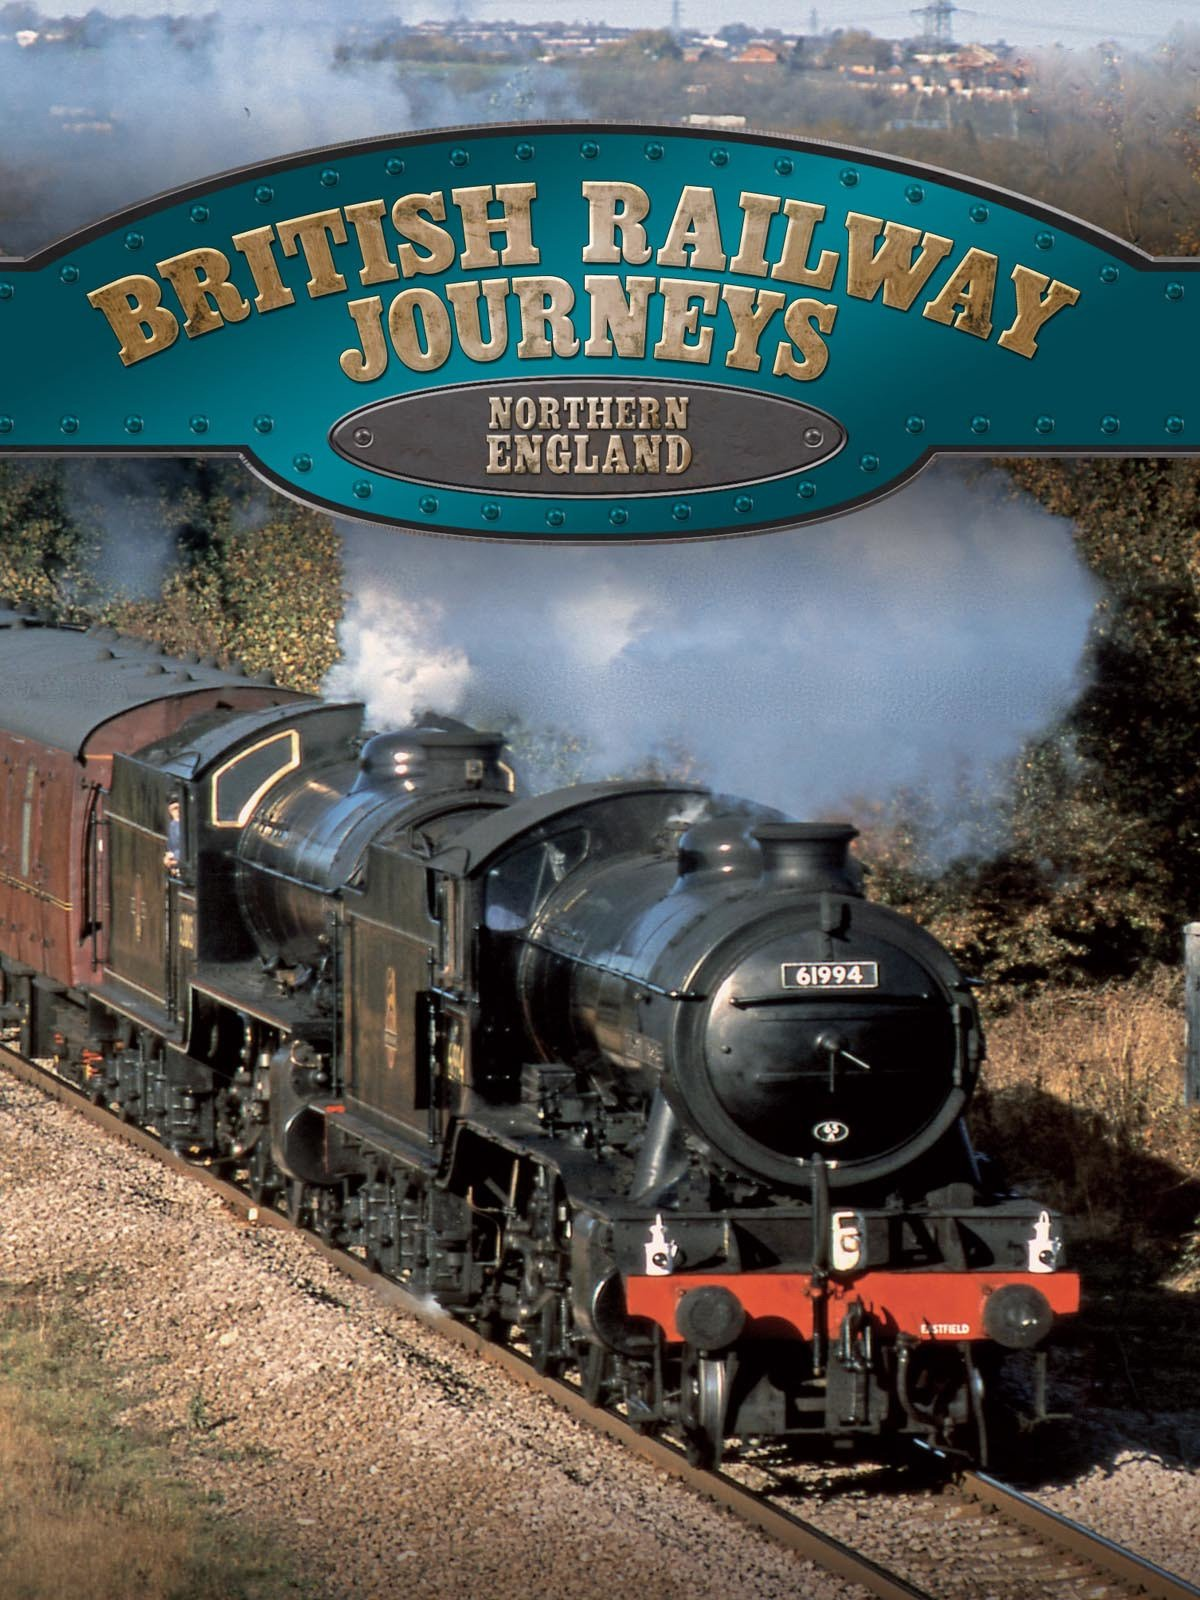 British Railway Journeys: Northern England